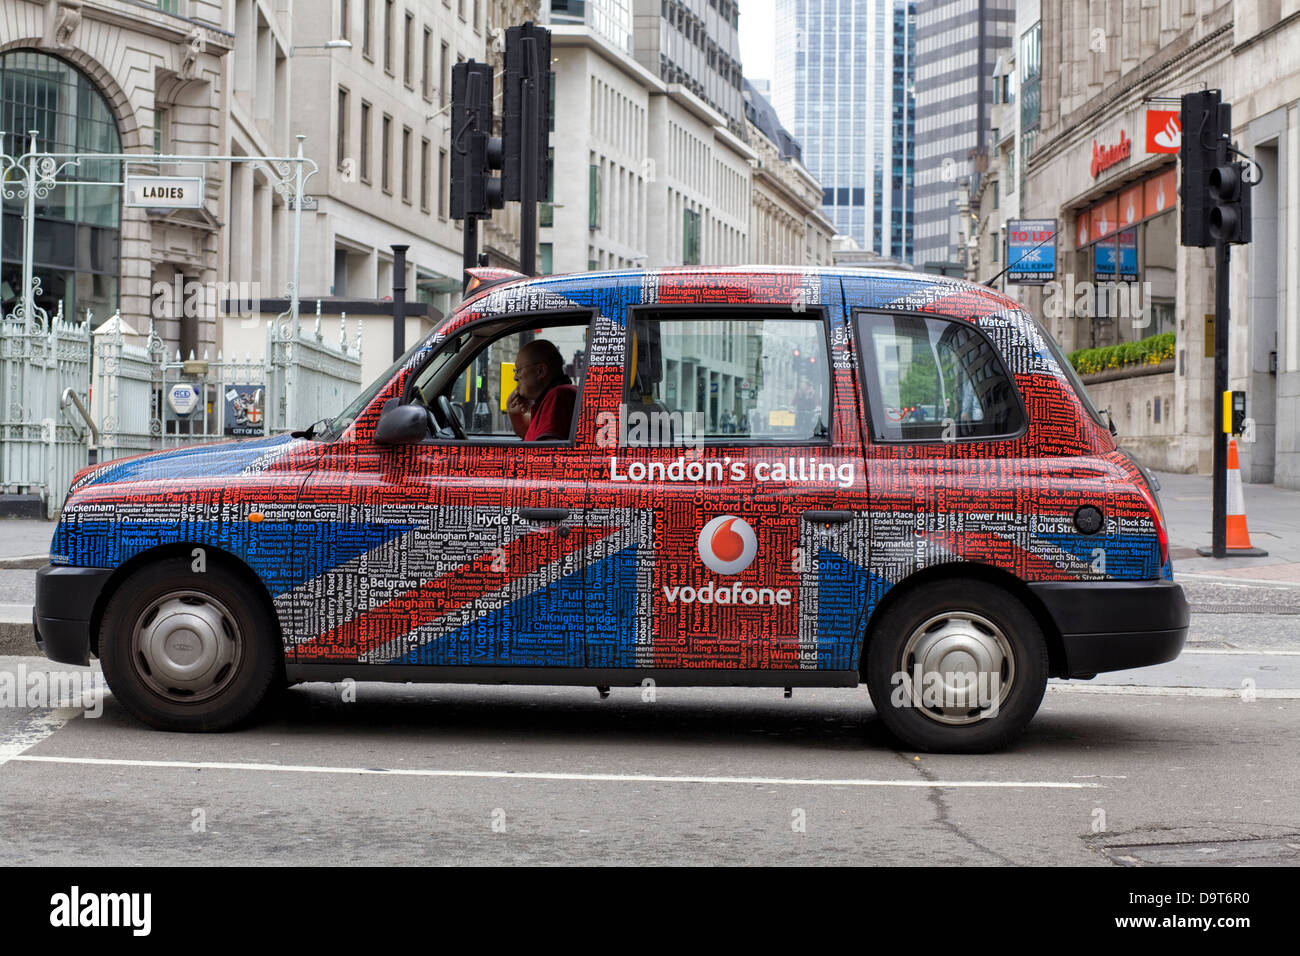 London Hackney Cab sponsored by Vodafone London England - Stock Image